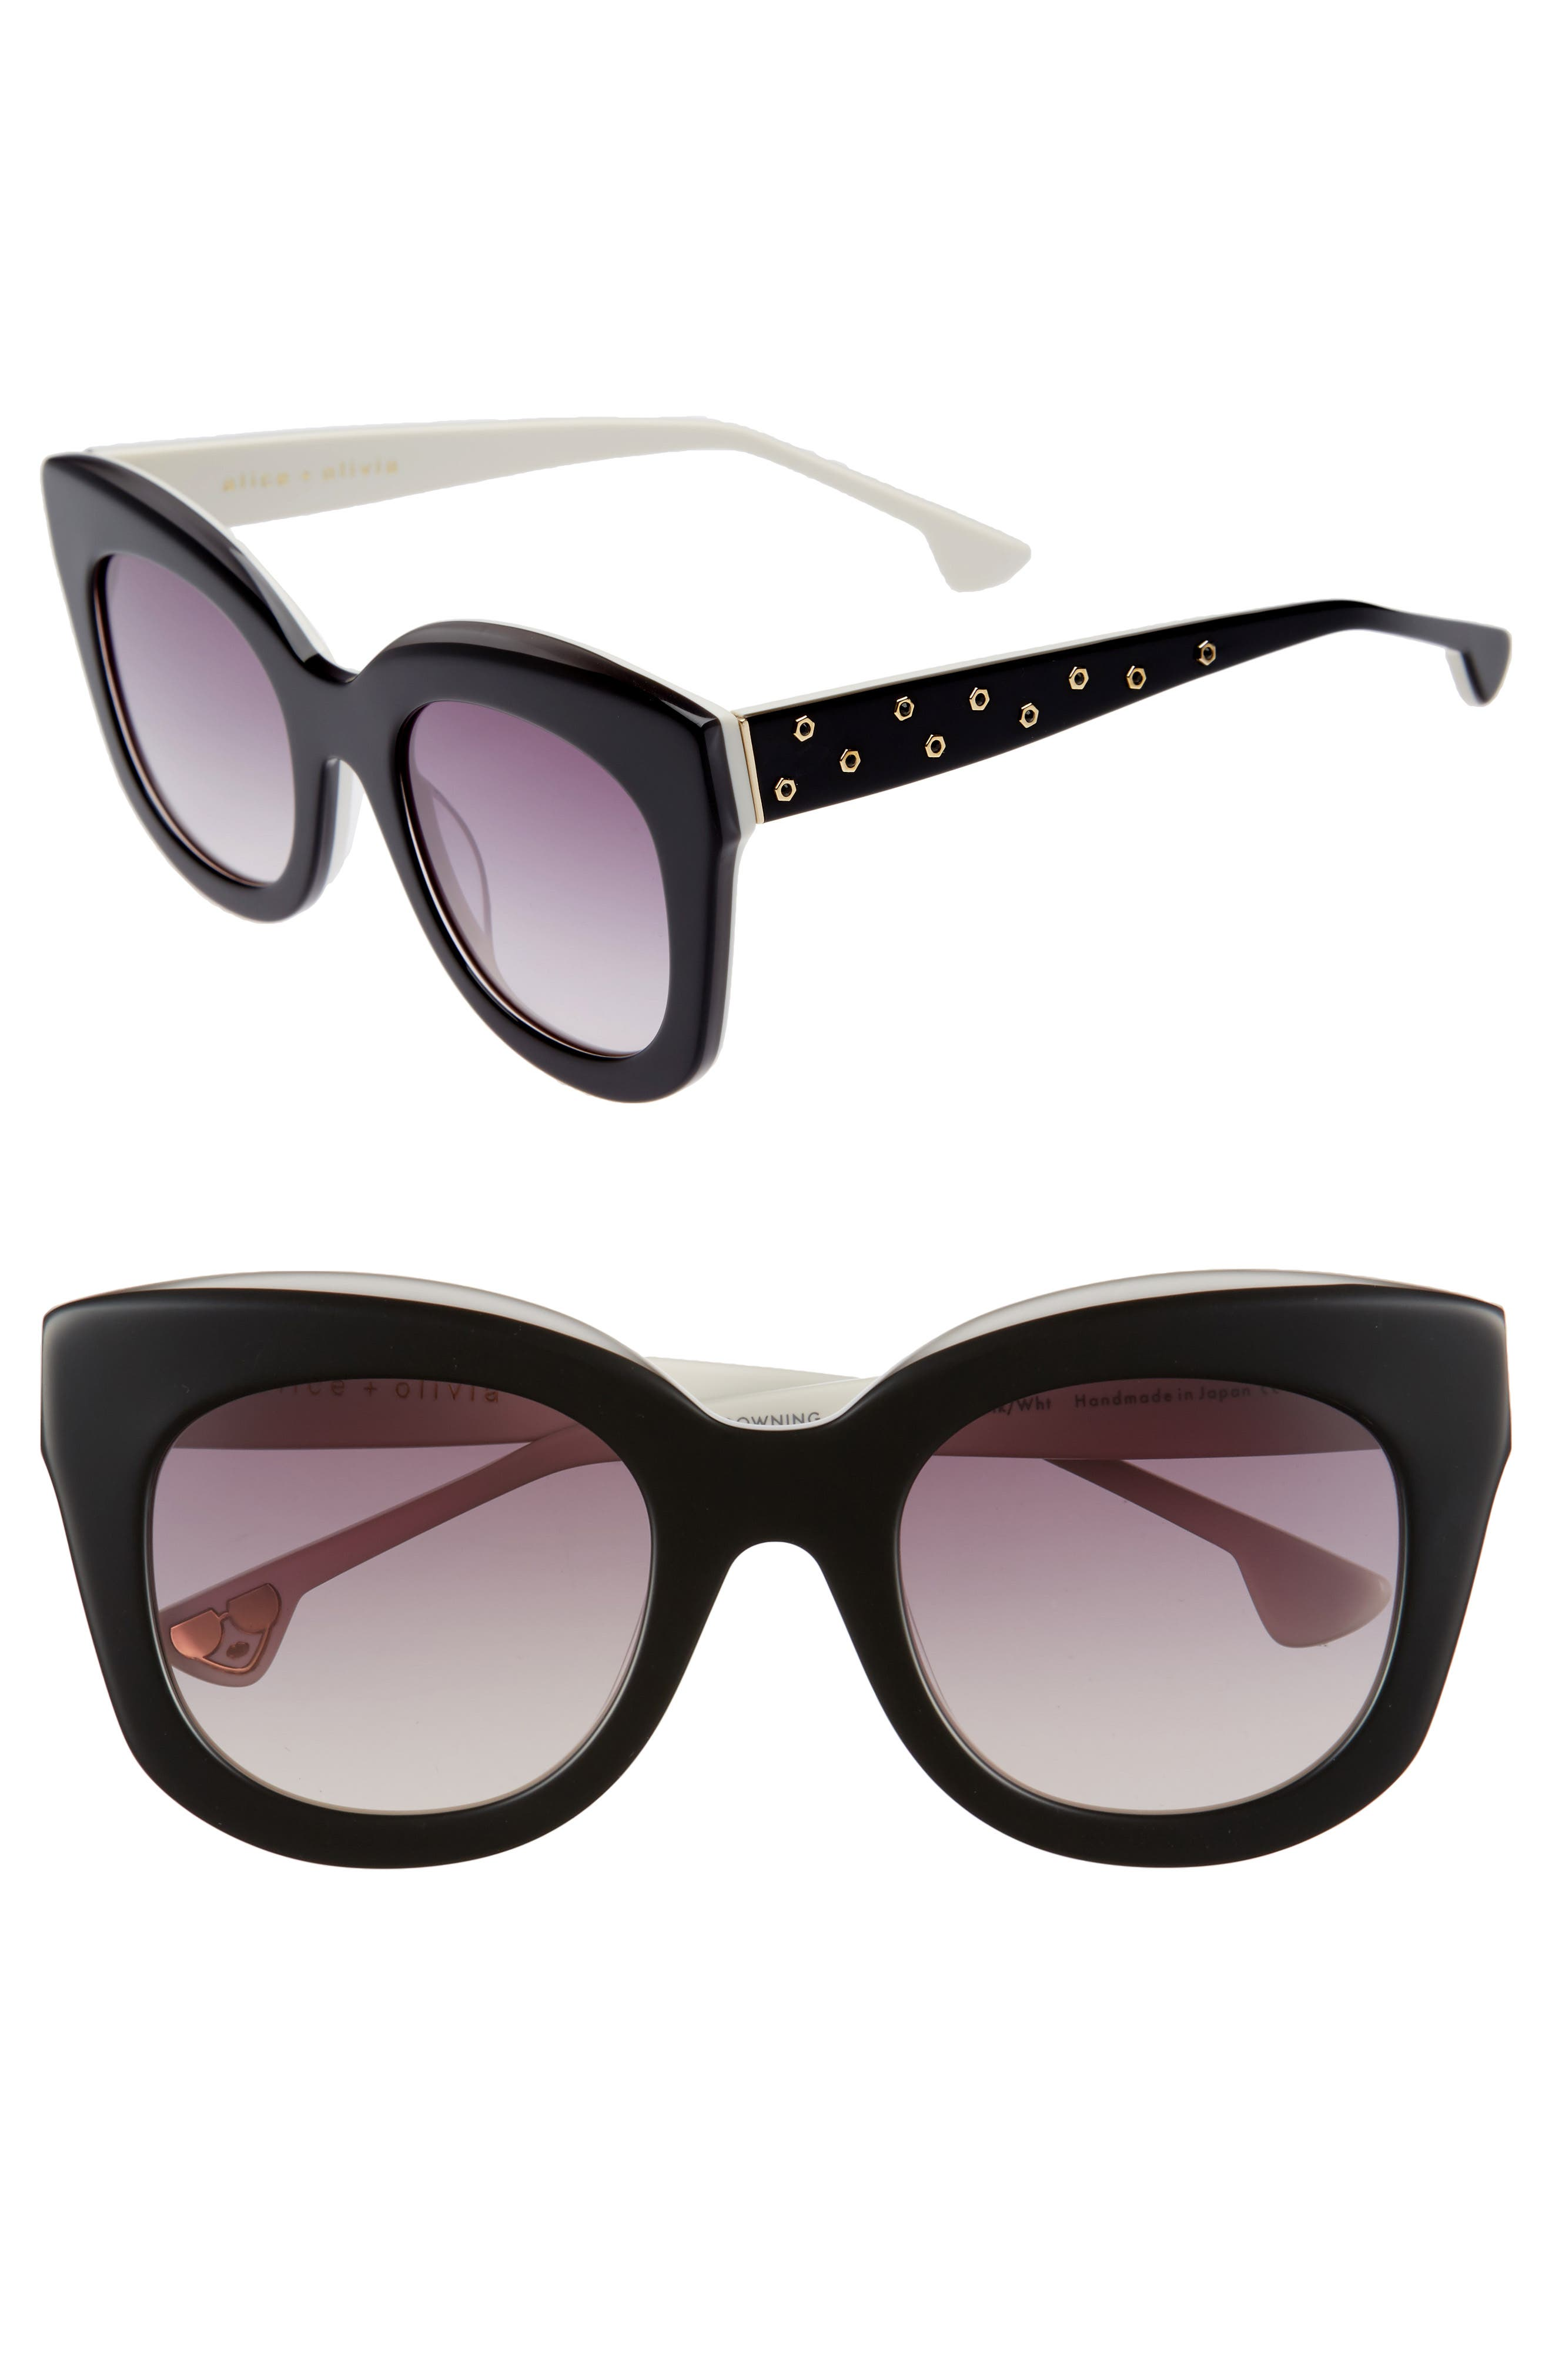 Downing 51mm Cat Eye Sunglasses,                         Main,                         color,